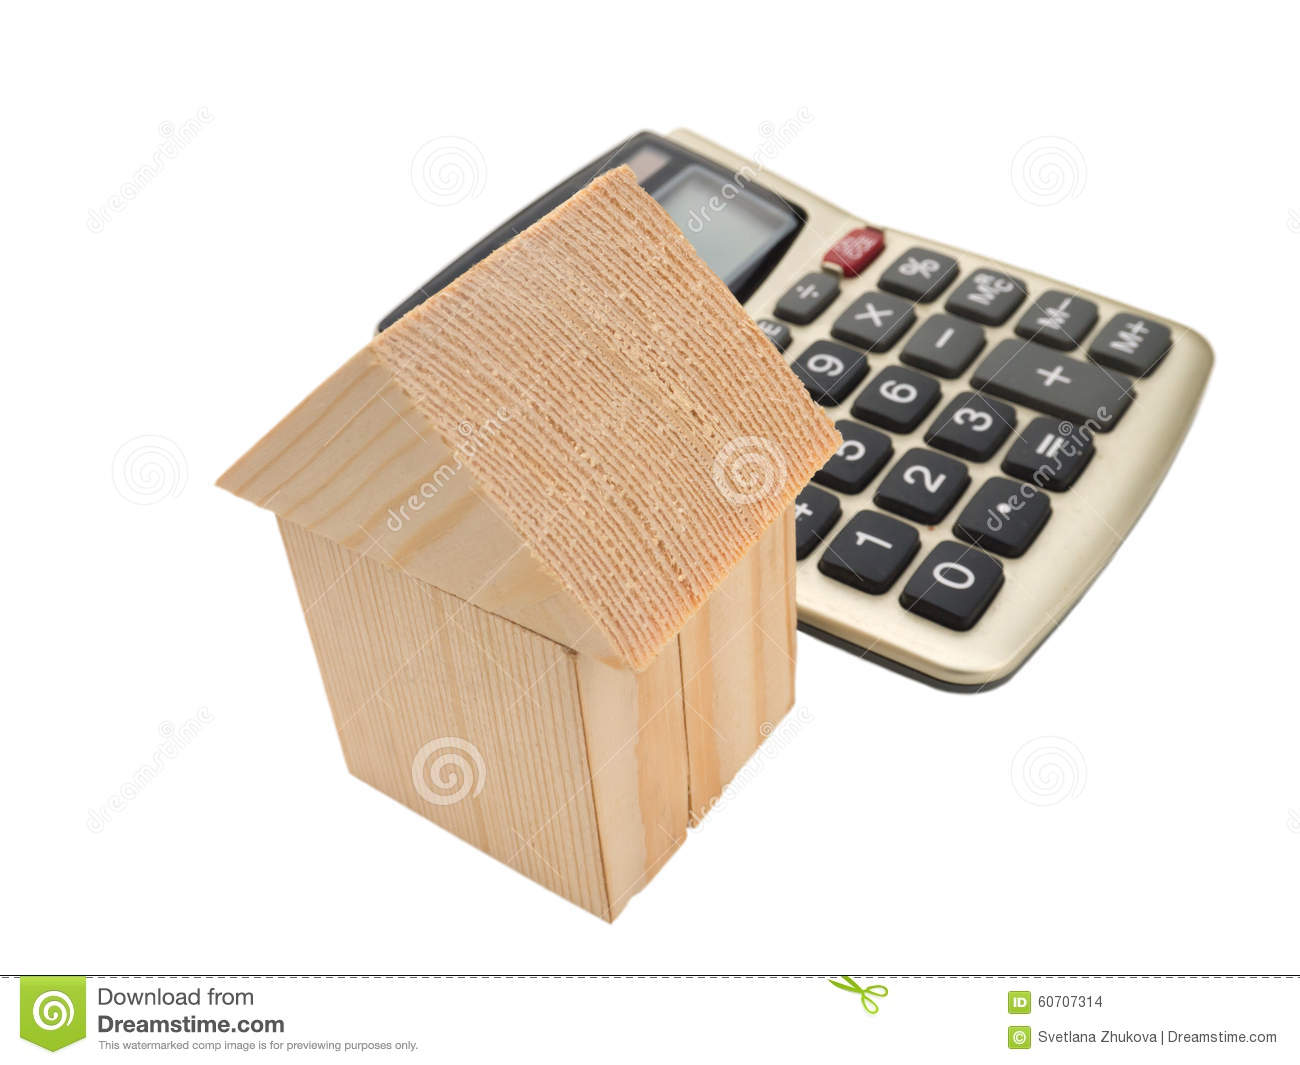 House of wooden building blocks with calculator stock for Build new house calculator